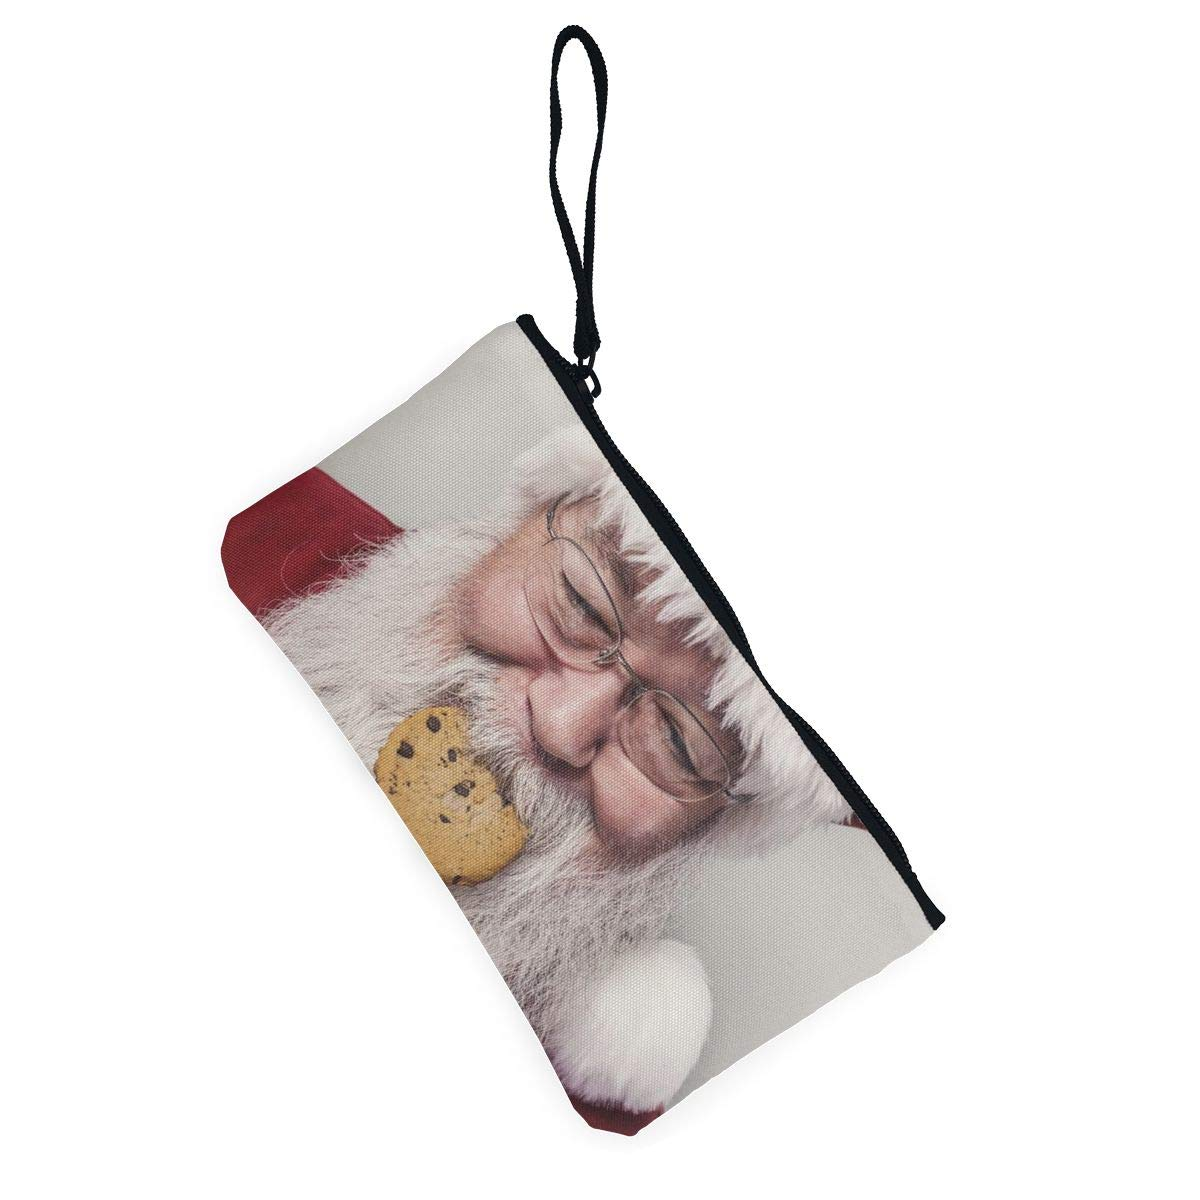 Make Up Bag,Cellphone Bag With Handle Santa Clause Eating Cookie Zipper Canvas Coin Purse Wallet